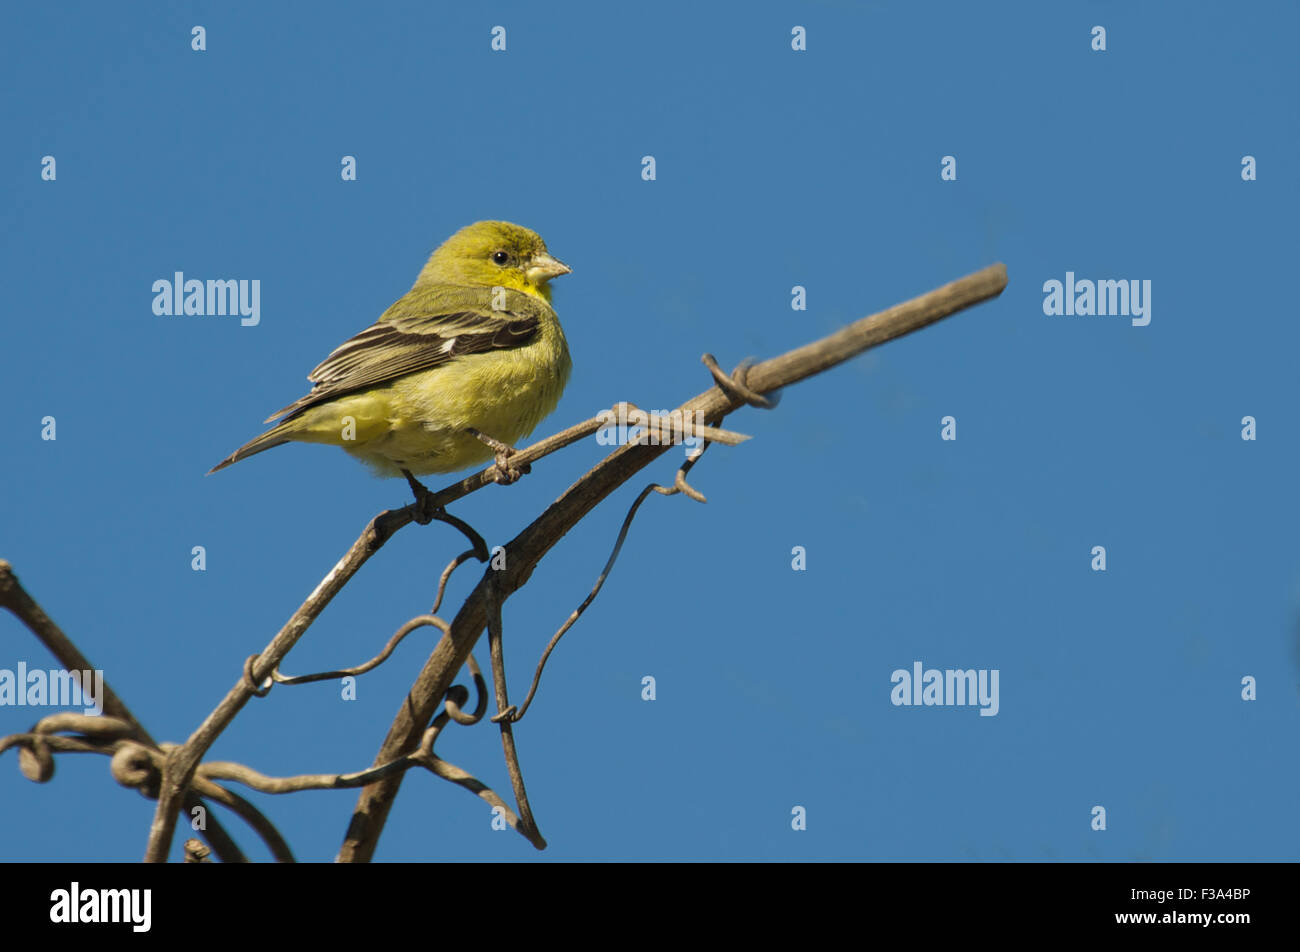 American Goldfinch (Carduelis tristis) female perched in tree,  Healdsburg, California, USA - Stock Image